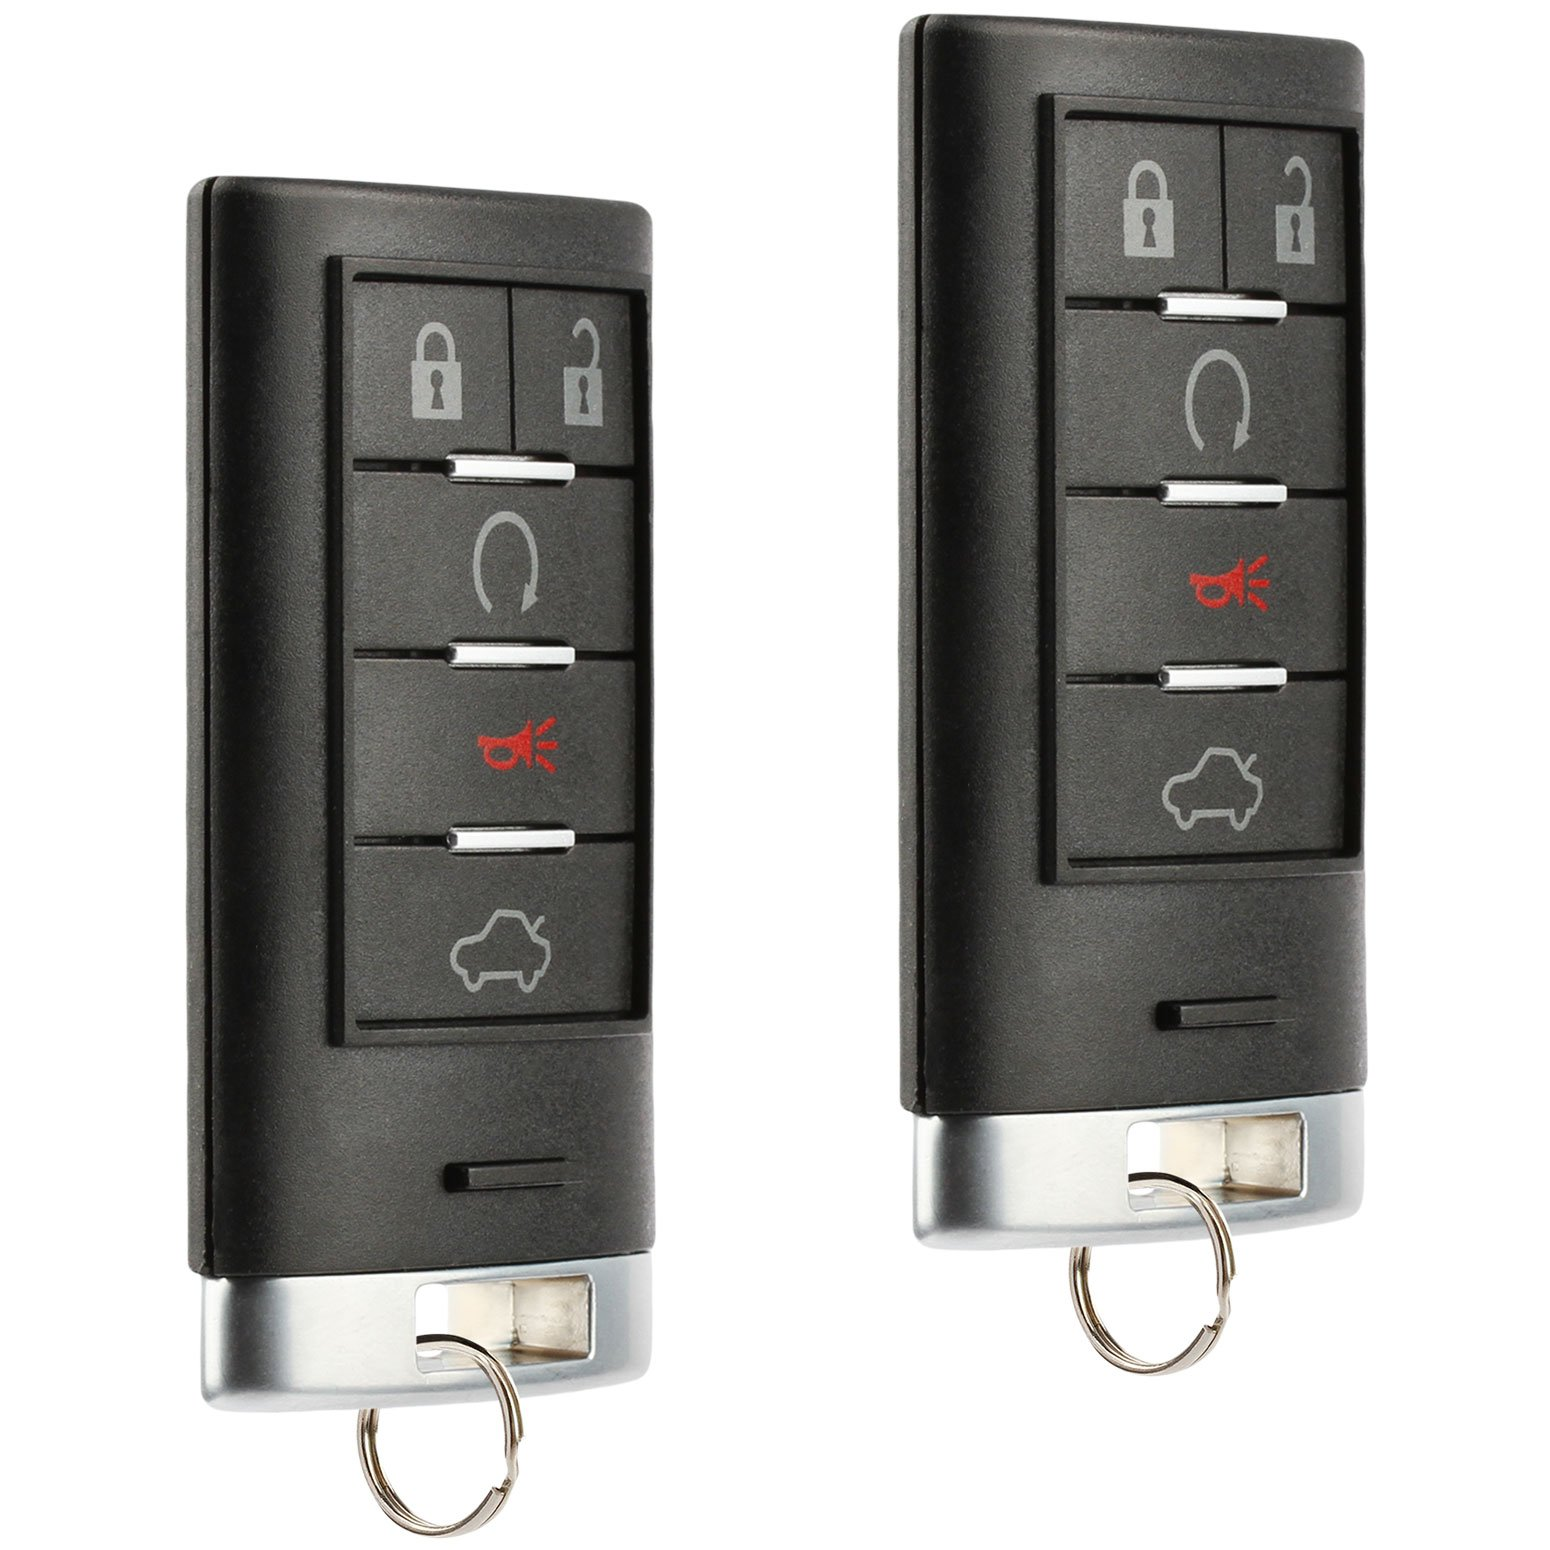 Smart Key Fob Keyless Entry Remote fits Cadillac CTS STS 2008 2009 2010 2011 2012 2013 2014 (M3N5WY7777A), Set of 2